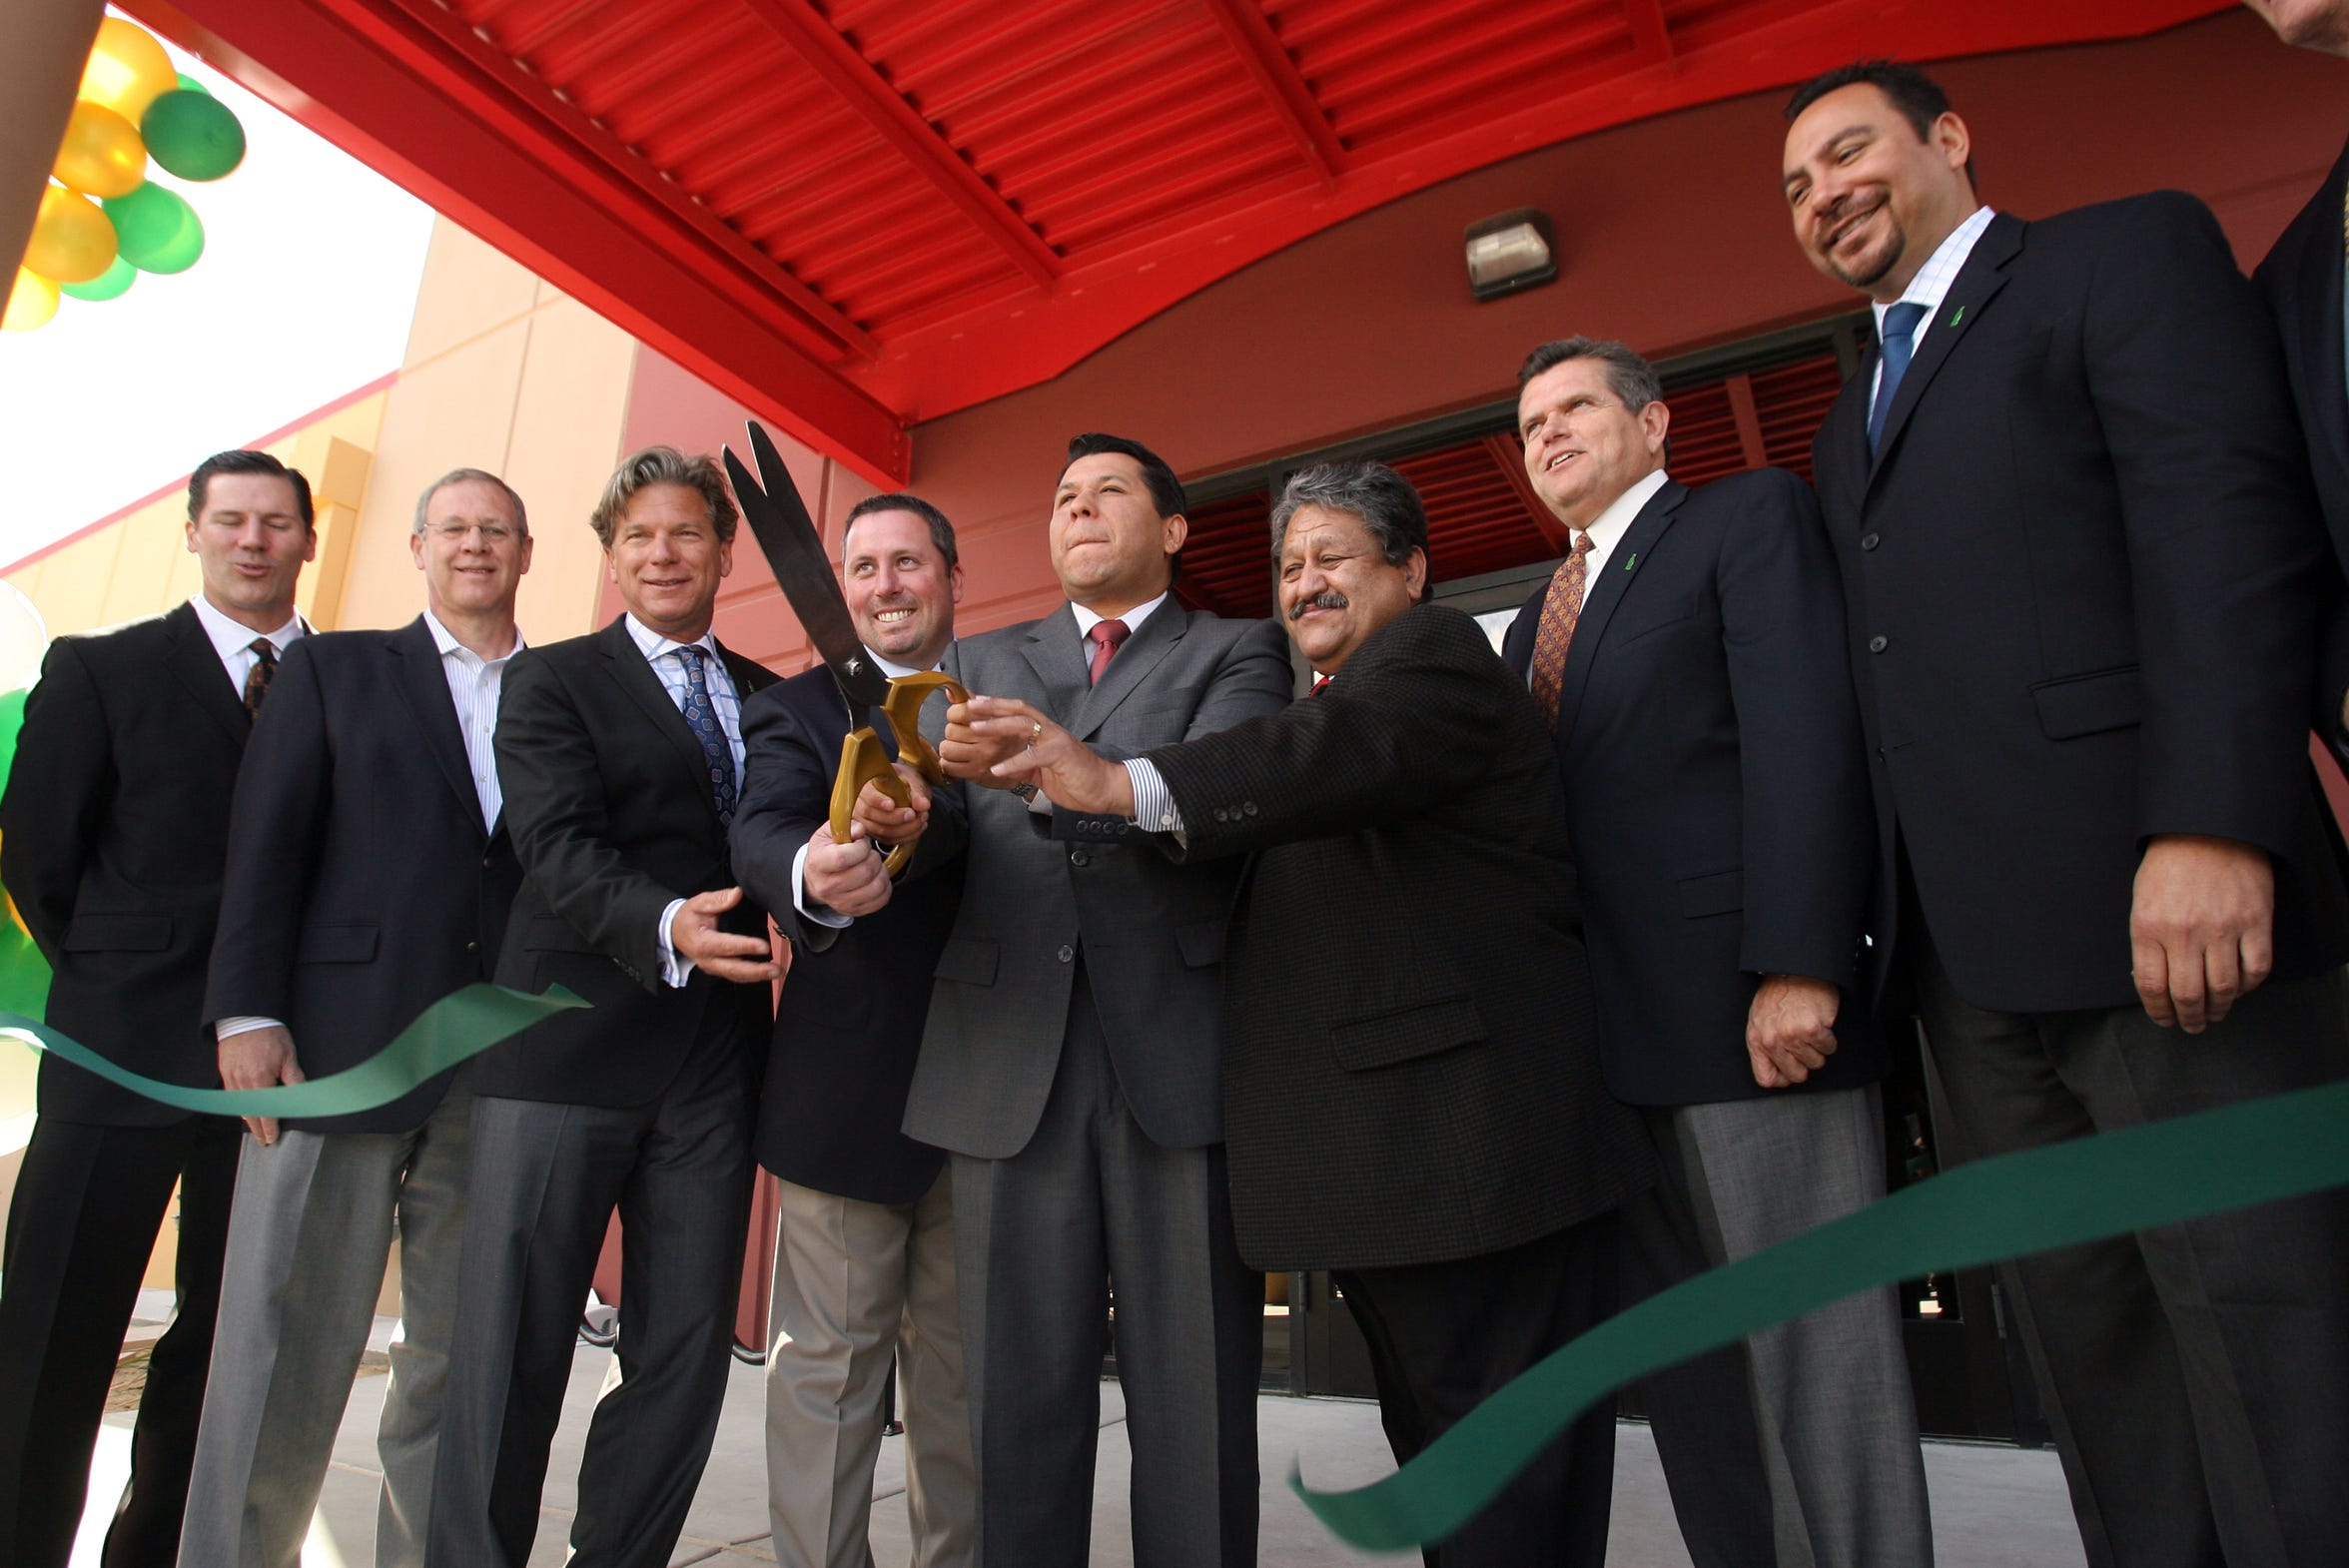 Then-Coachella Mayor Eduardo Garcia (center) and other officials at the opening of the Coca-Cola Bottling Company of Southern California's new Sales Center in Coachella, Calif. on Wednesday, April 21, 2010.